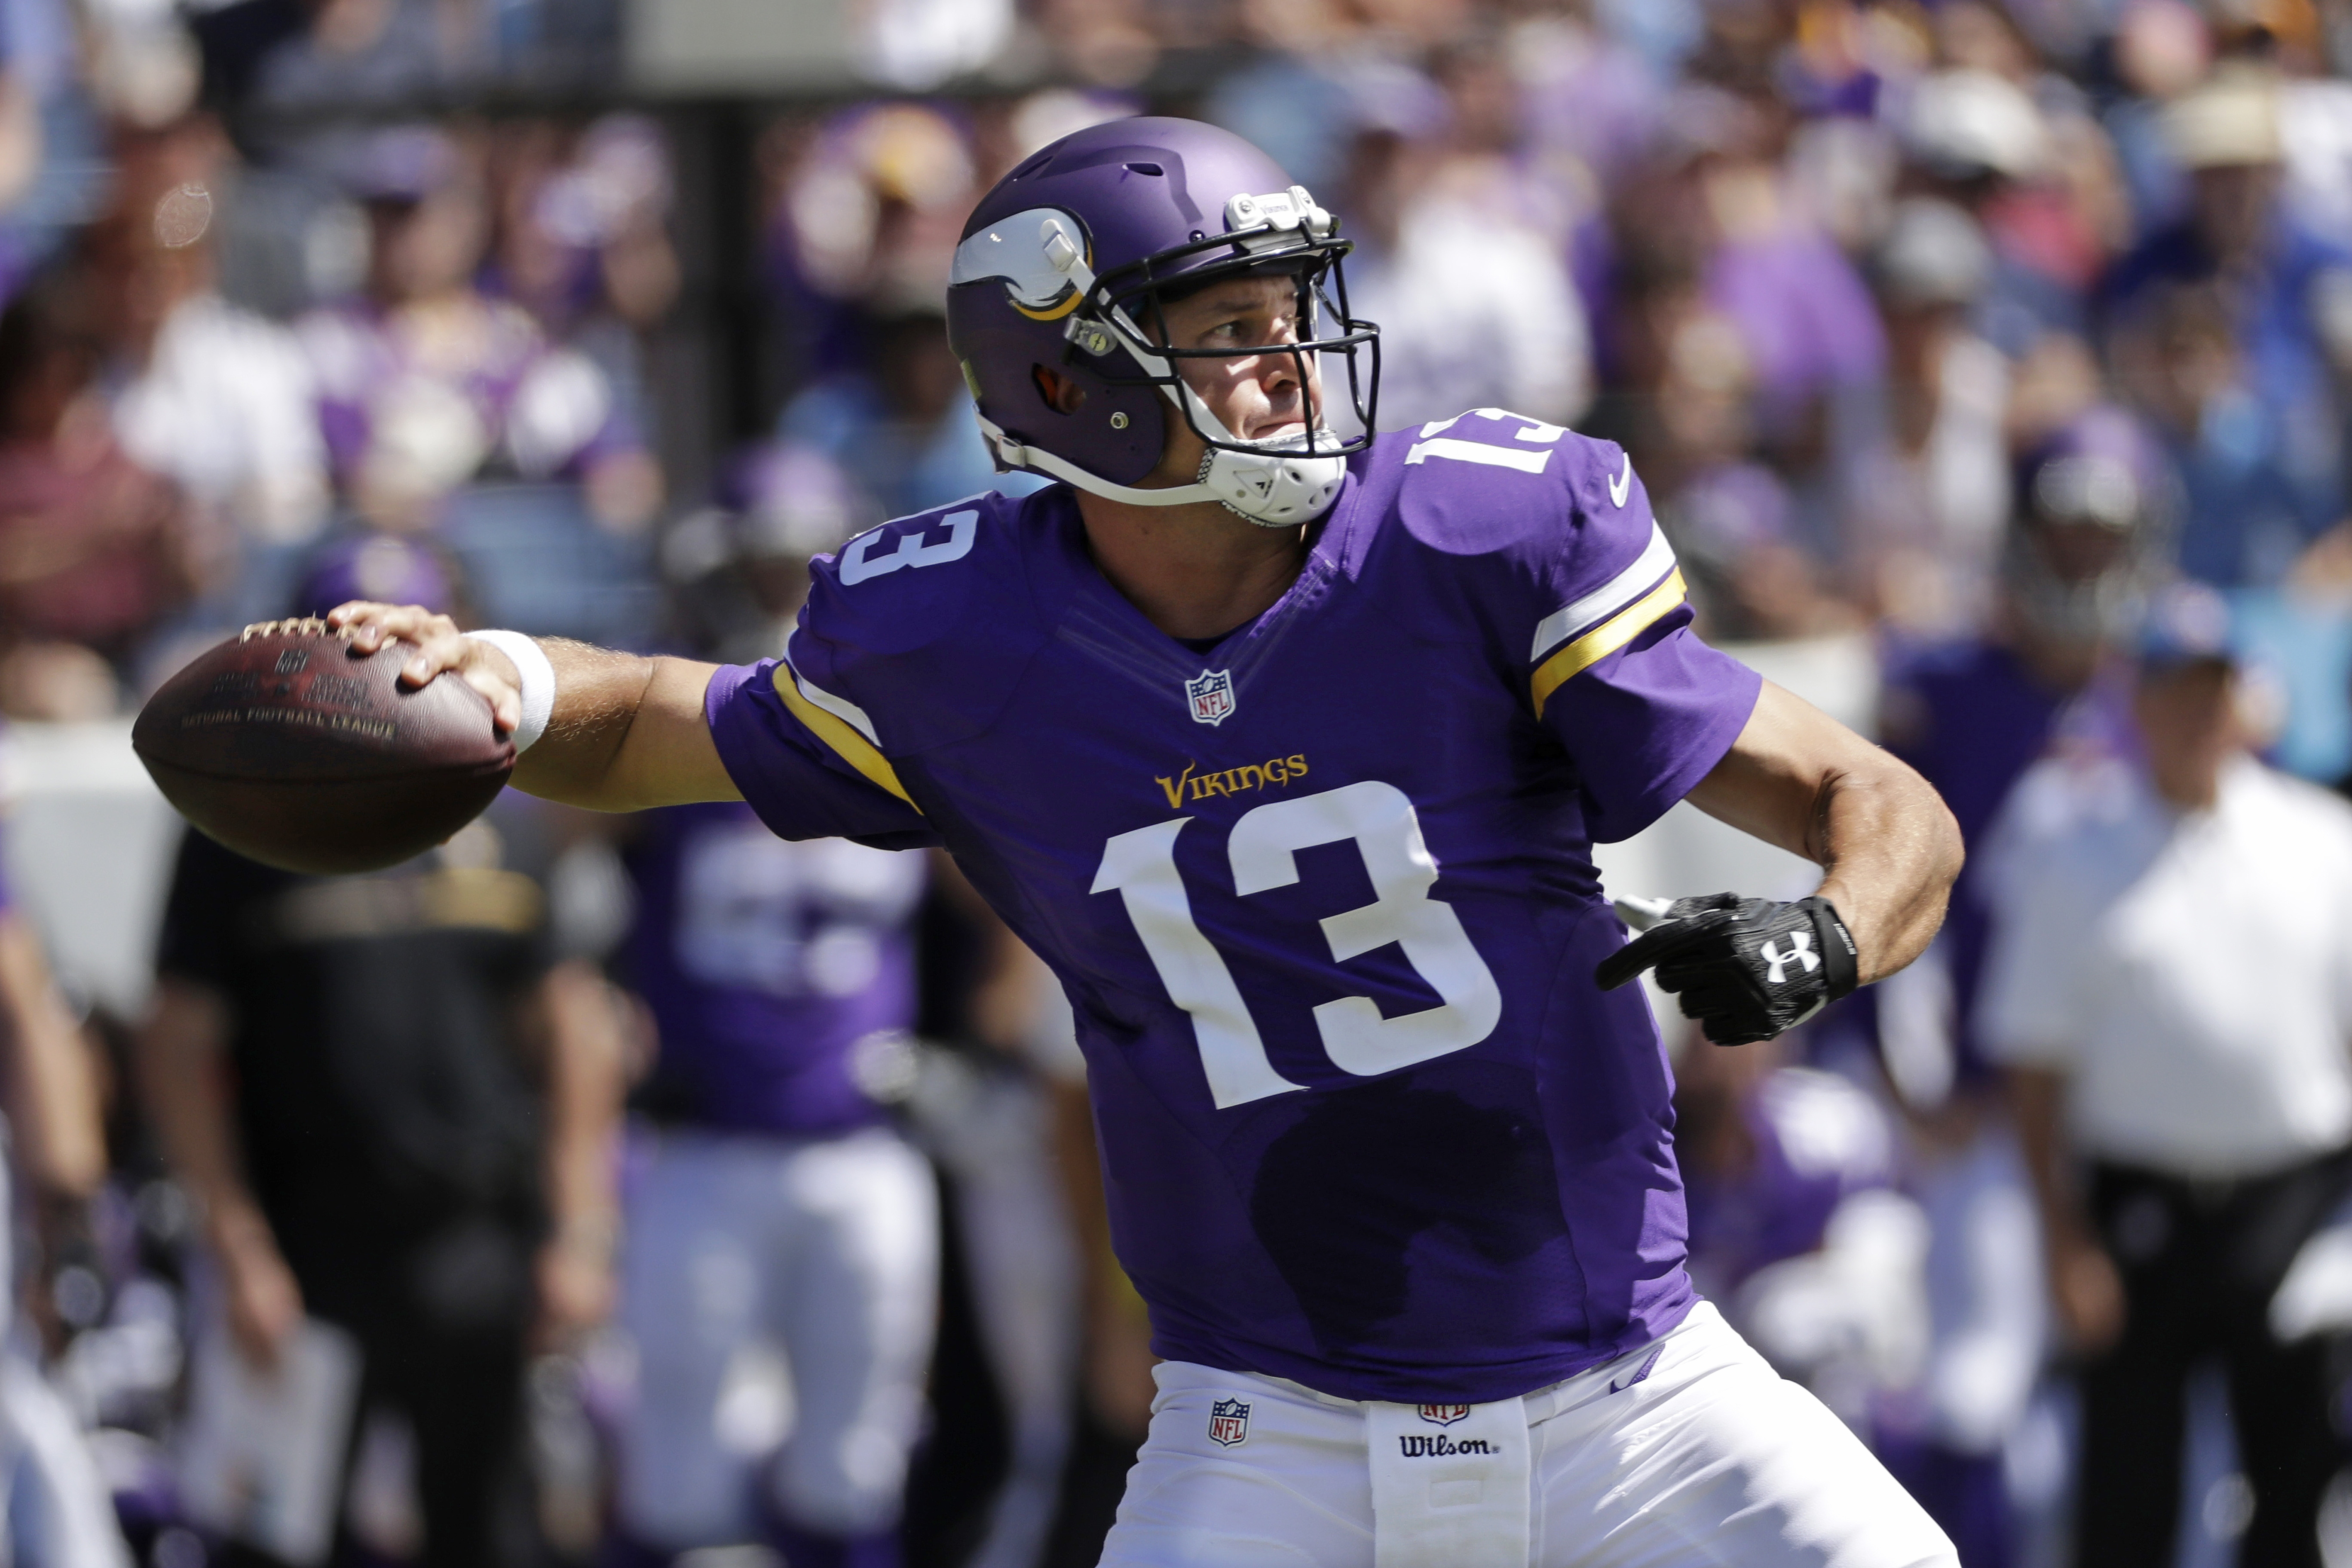 Minnesota Vikings quarterback Shaun Hill passes against the Tennessee Titans in the first half of an NFL football game Sunday, Sept. 11, 2016, in Nashville, Tenn. (AP Photo/James Kenney)